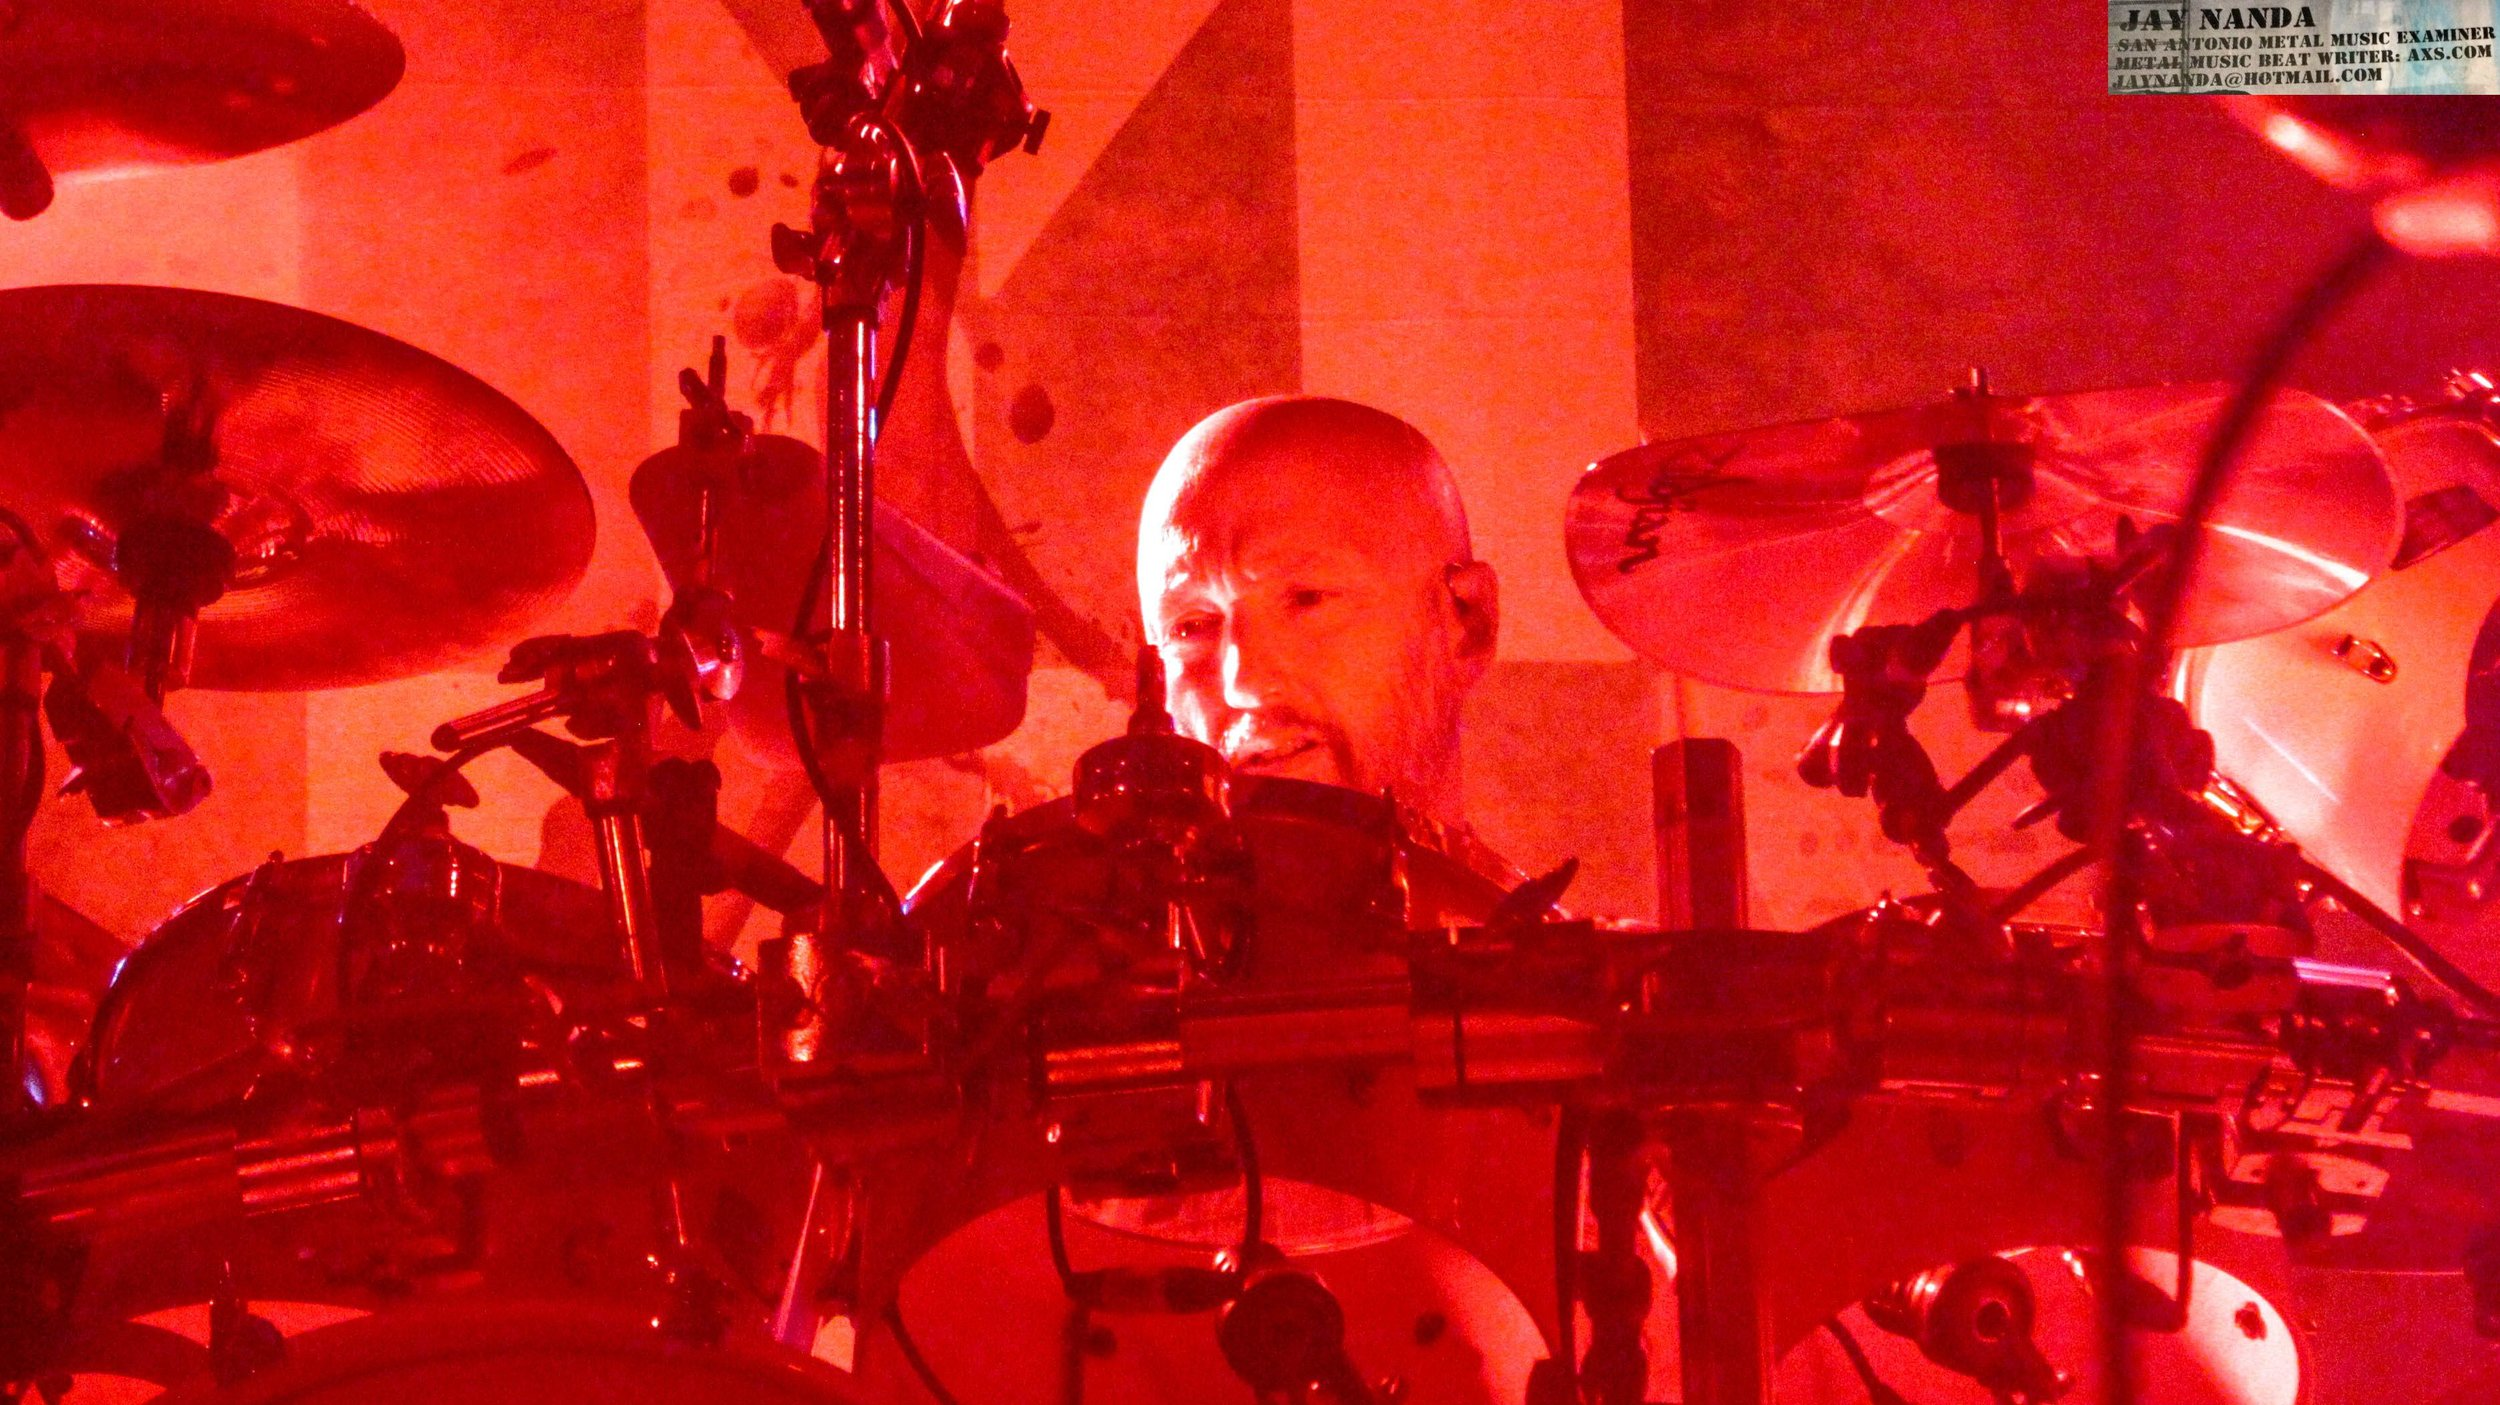 McClain drums in a sea of red.